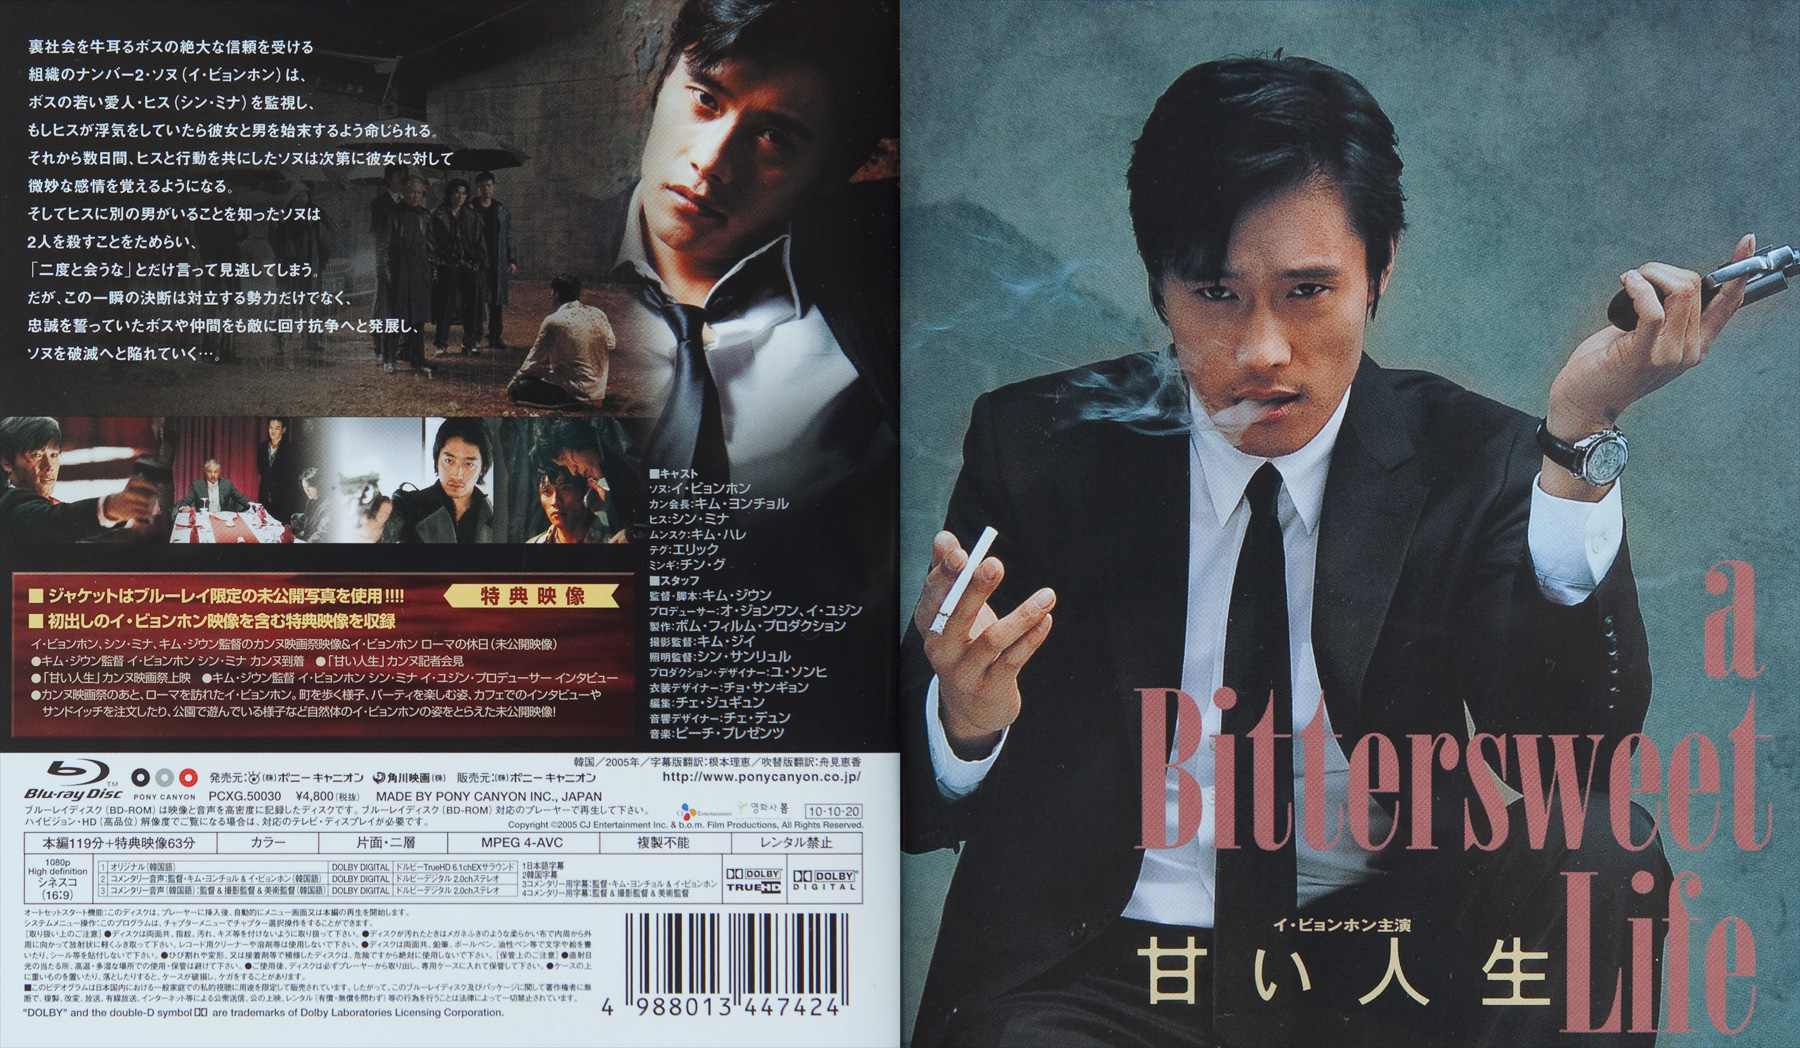 A Bittersweet Life Blu-ray Disc | AsianBlurayGuide.com